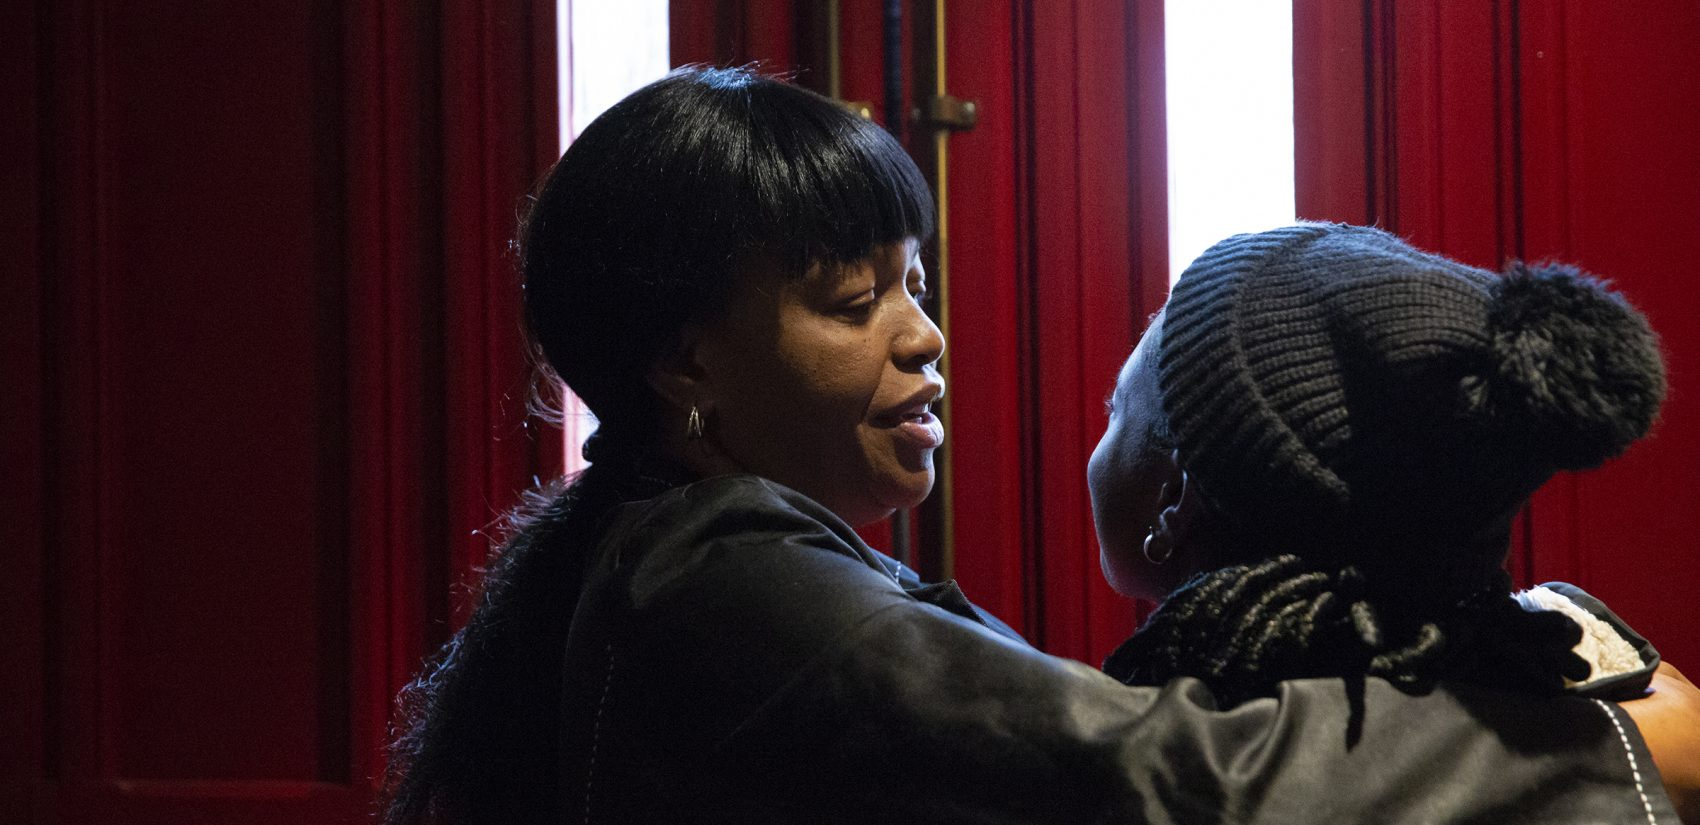 Oneita Thompson hugs her daughter Christine, who is 16, inside the First United Methodist Church of Germantown before she leaves for school on Monday, Nov. 12, 2018. (Heather Khalifa/The Philadelphia Inquirer)